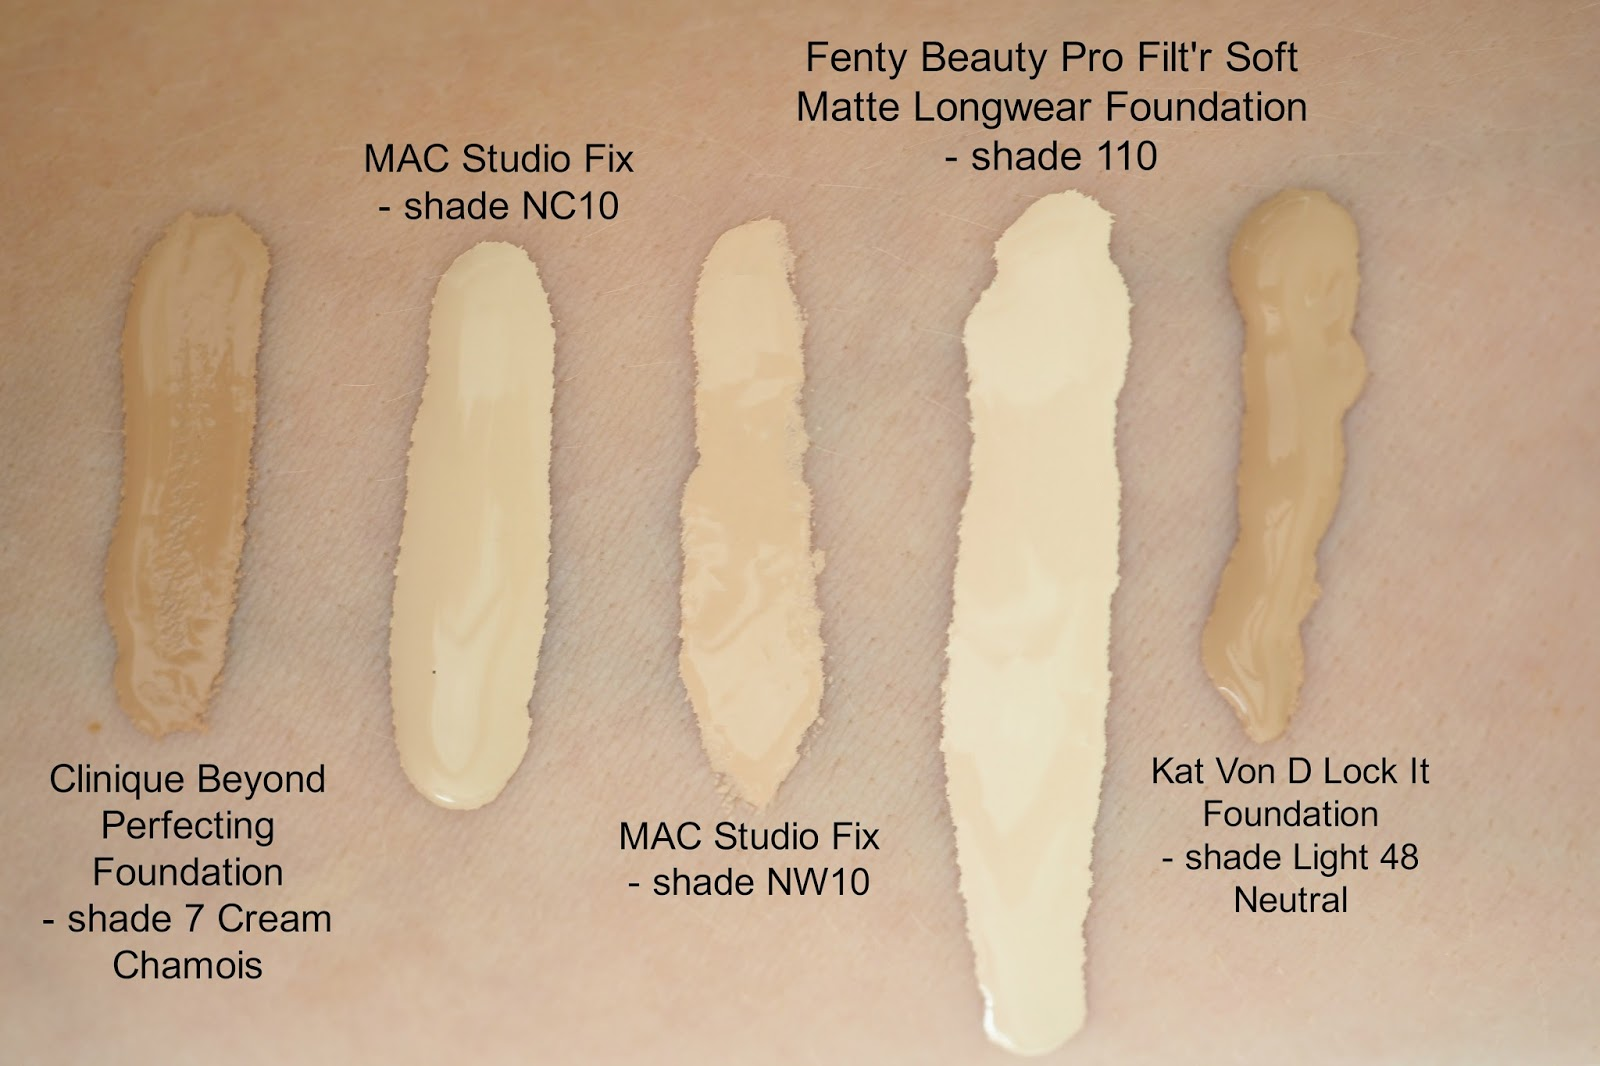 swatches of Fenty Beauty Pro Filt'r Foundation shade 110, MAC studio fix foundation NW10, MAC NC10, Kat Von D foundation 48 light neutral and clinique beyond perfecting foundation shade 7